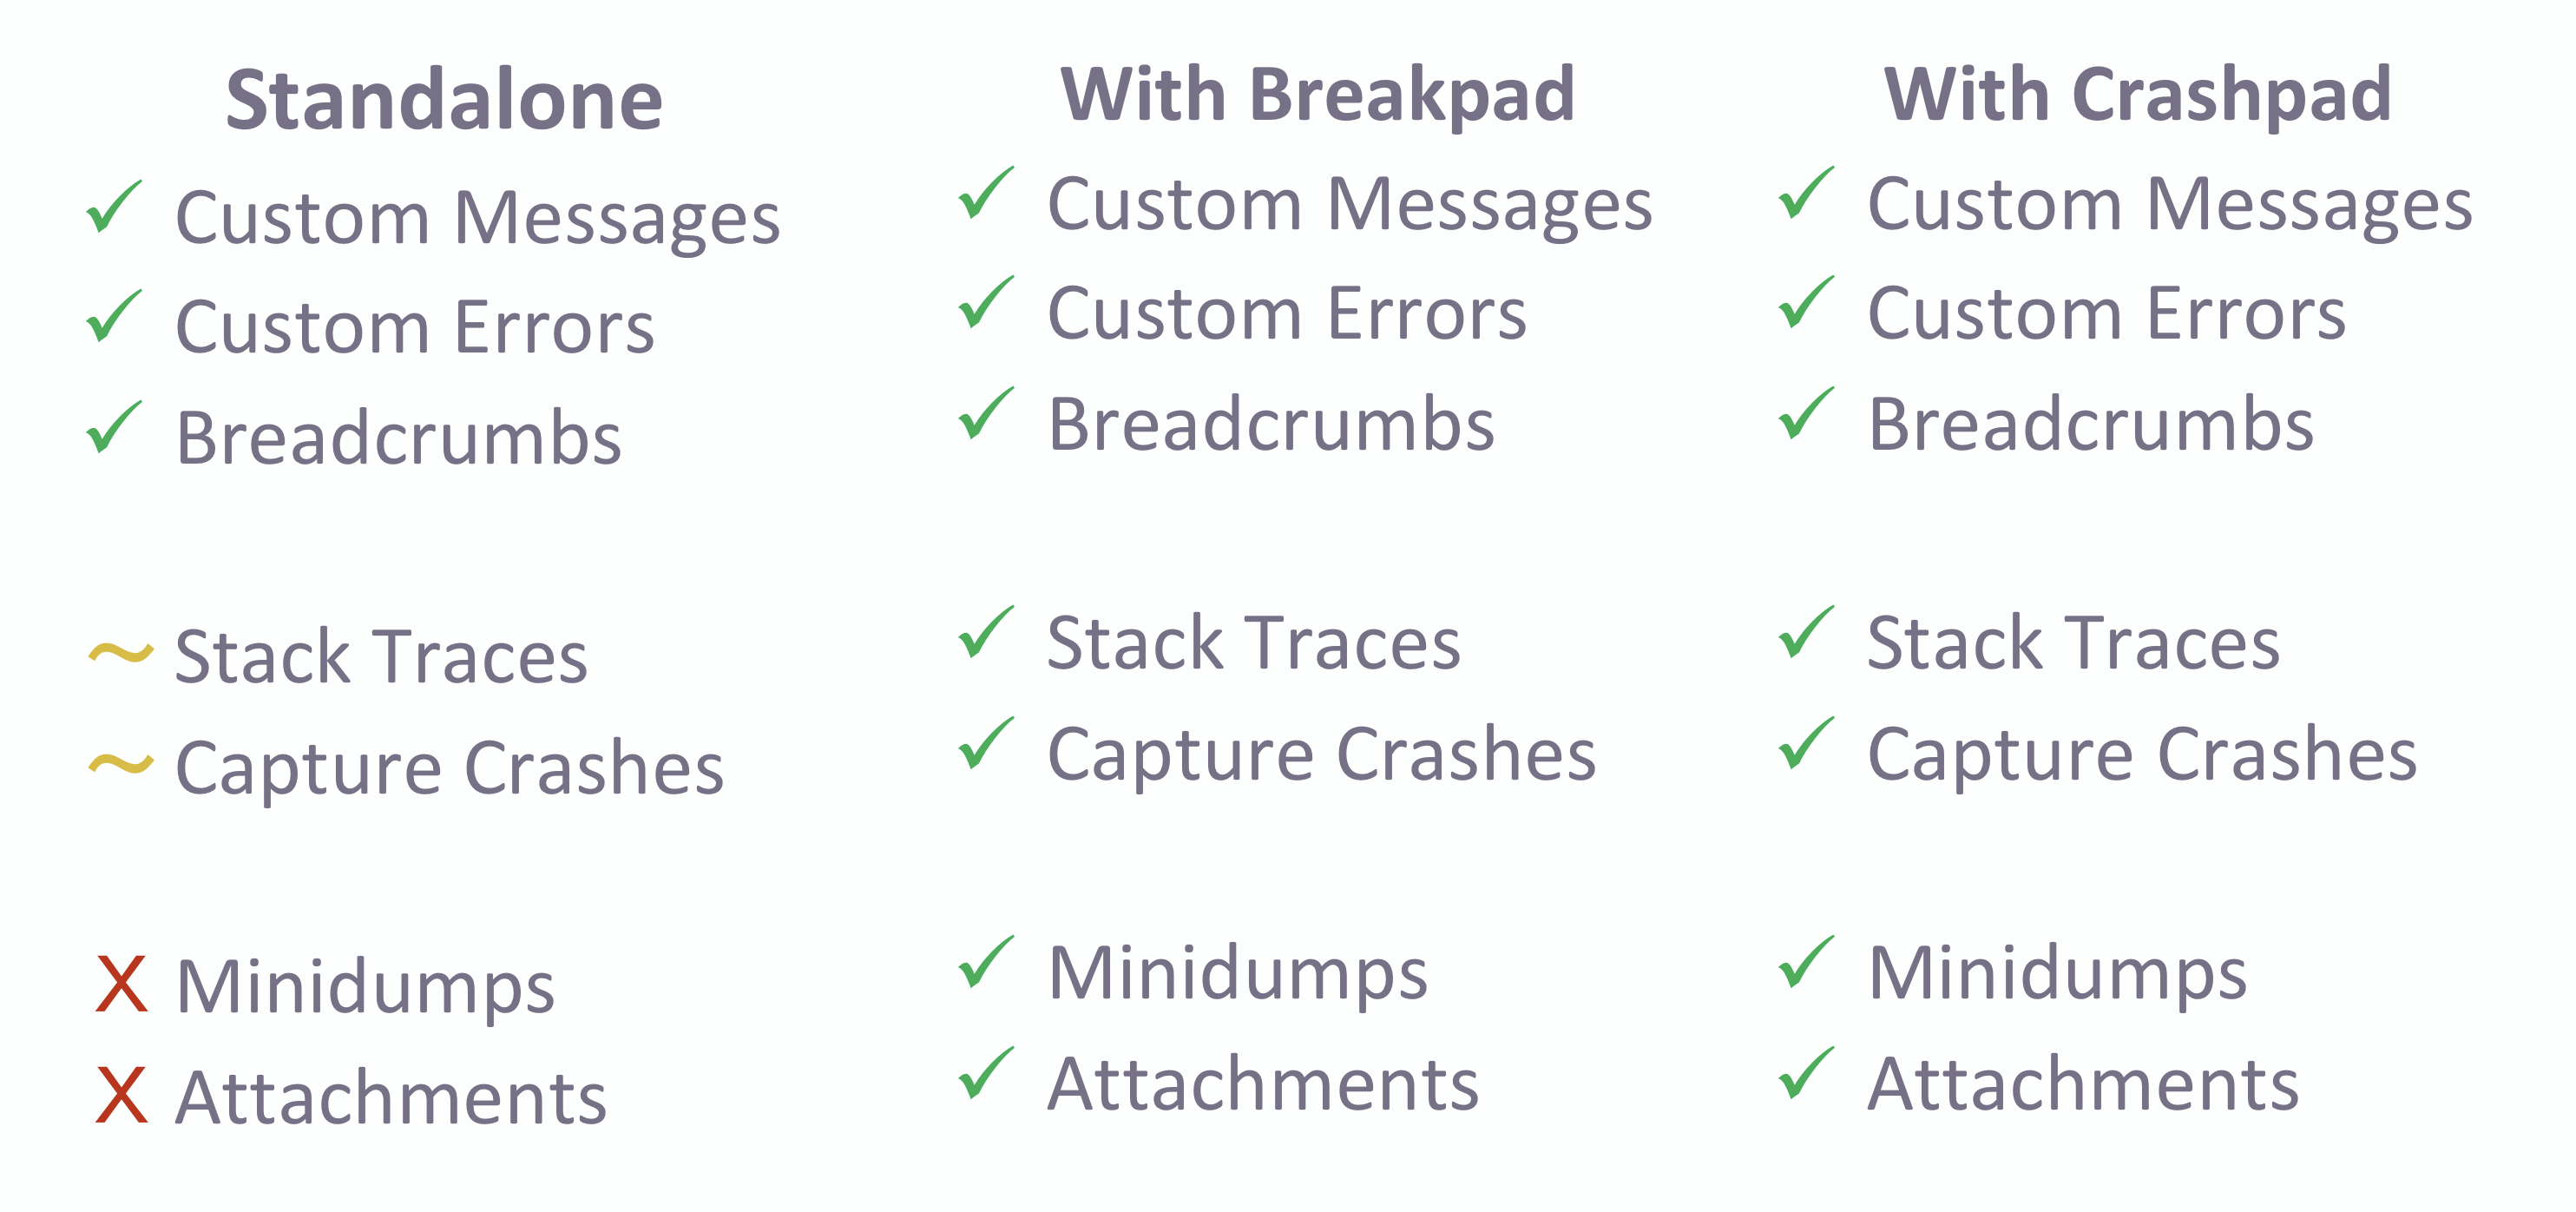 Three options of Sentry's Native SDK: standalone, with Breakpad, and with Crashpad